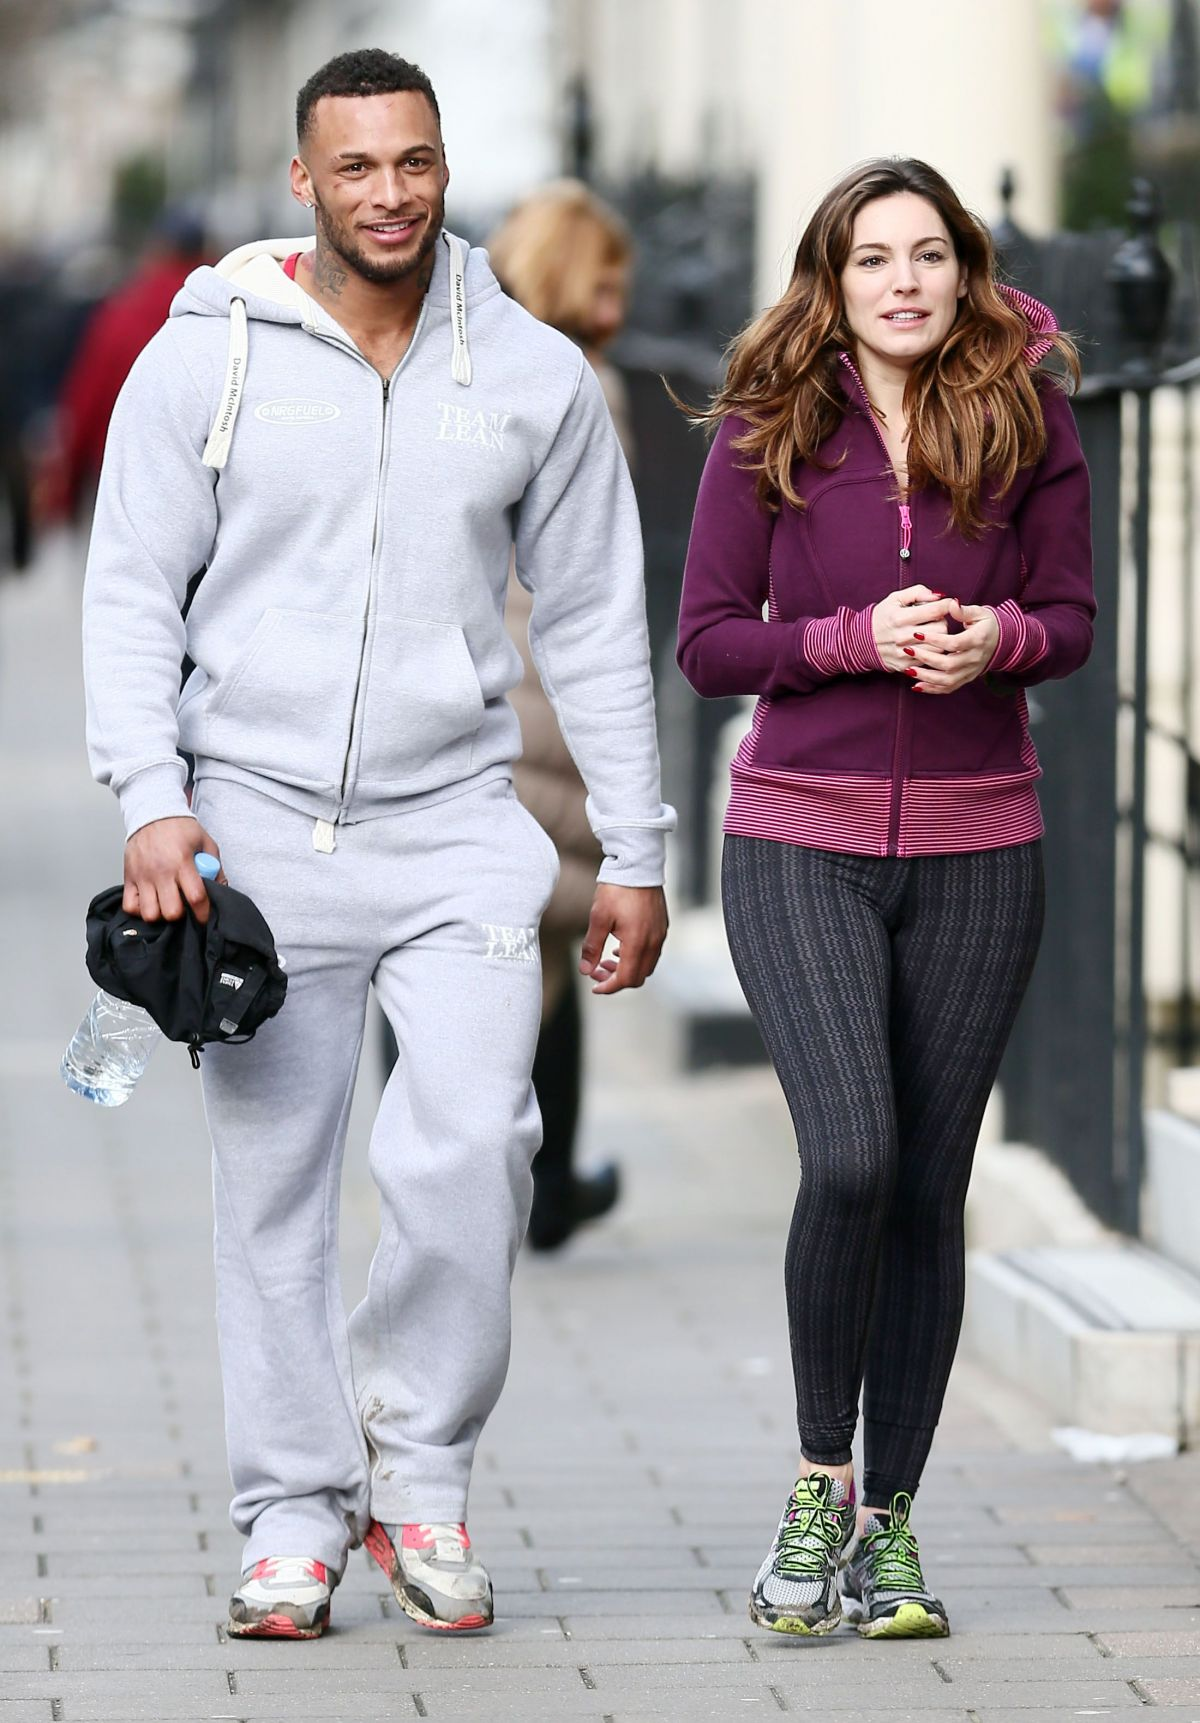 Kelly Brook Working Out With Her New Bloke In London